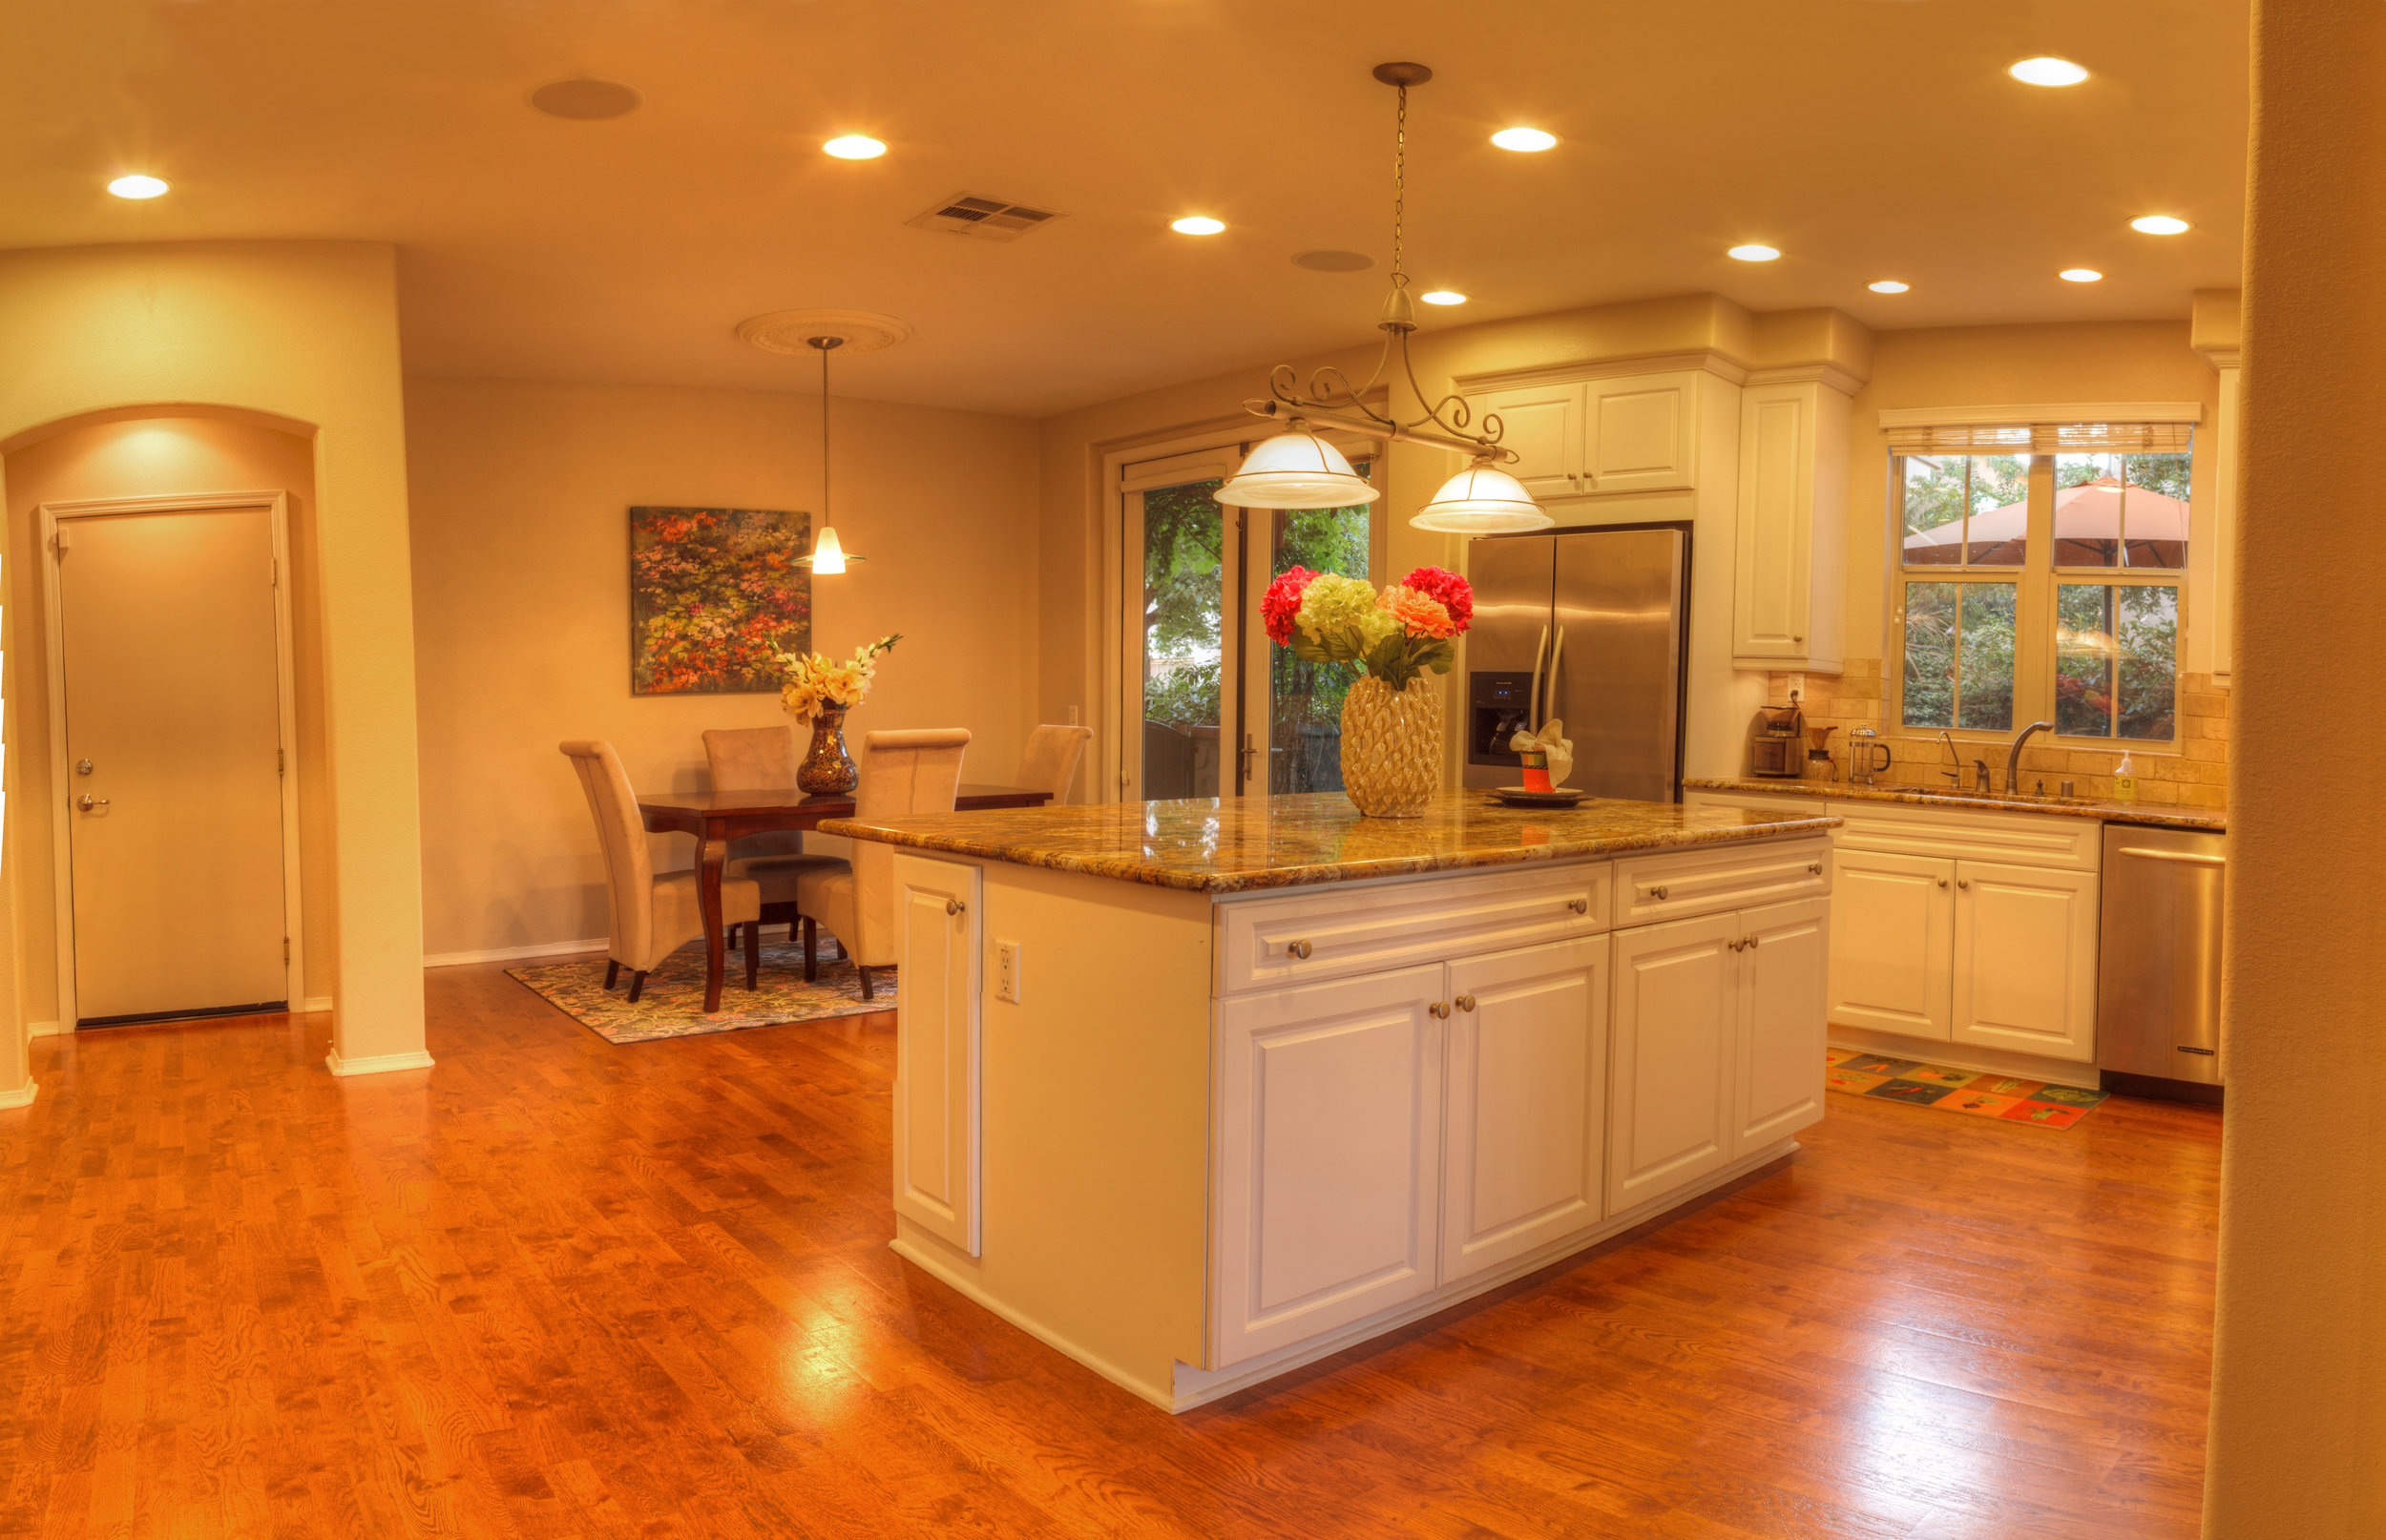 Home Lighting - New Recessed LocationsReplace existing can lighting with newRetrofit existing fixturesUnder Cabinet lightingPendent LightsKitchen renovationsBathroom renovations